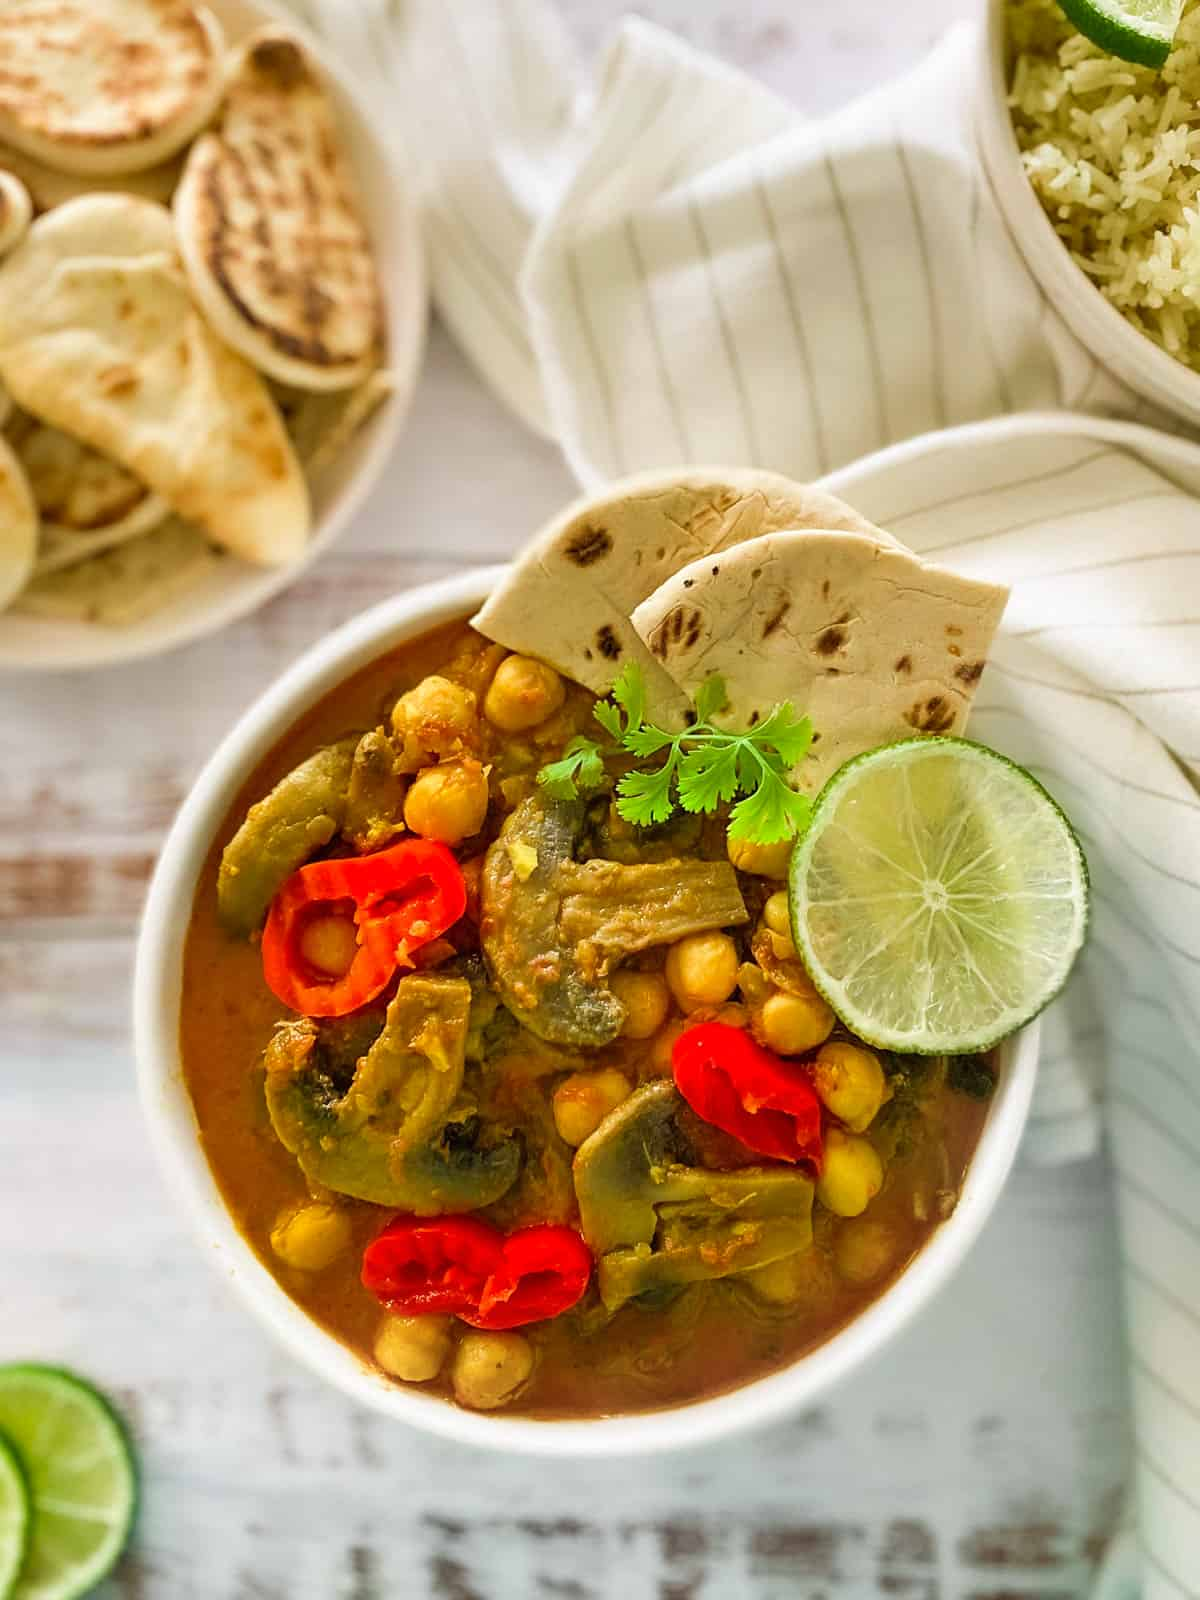 white bowl of mushroom and chickpea curry with red chilies garnished on top and naan bread on the side